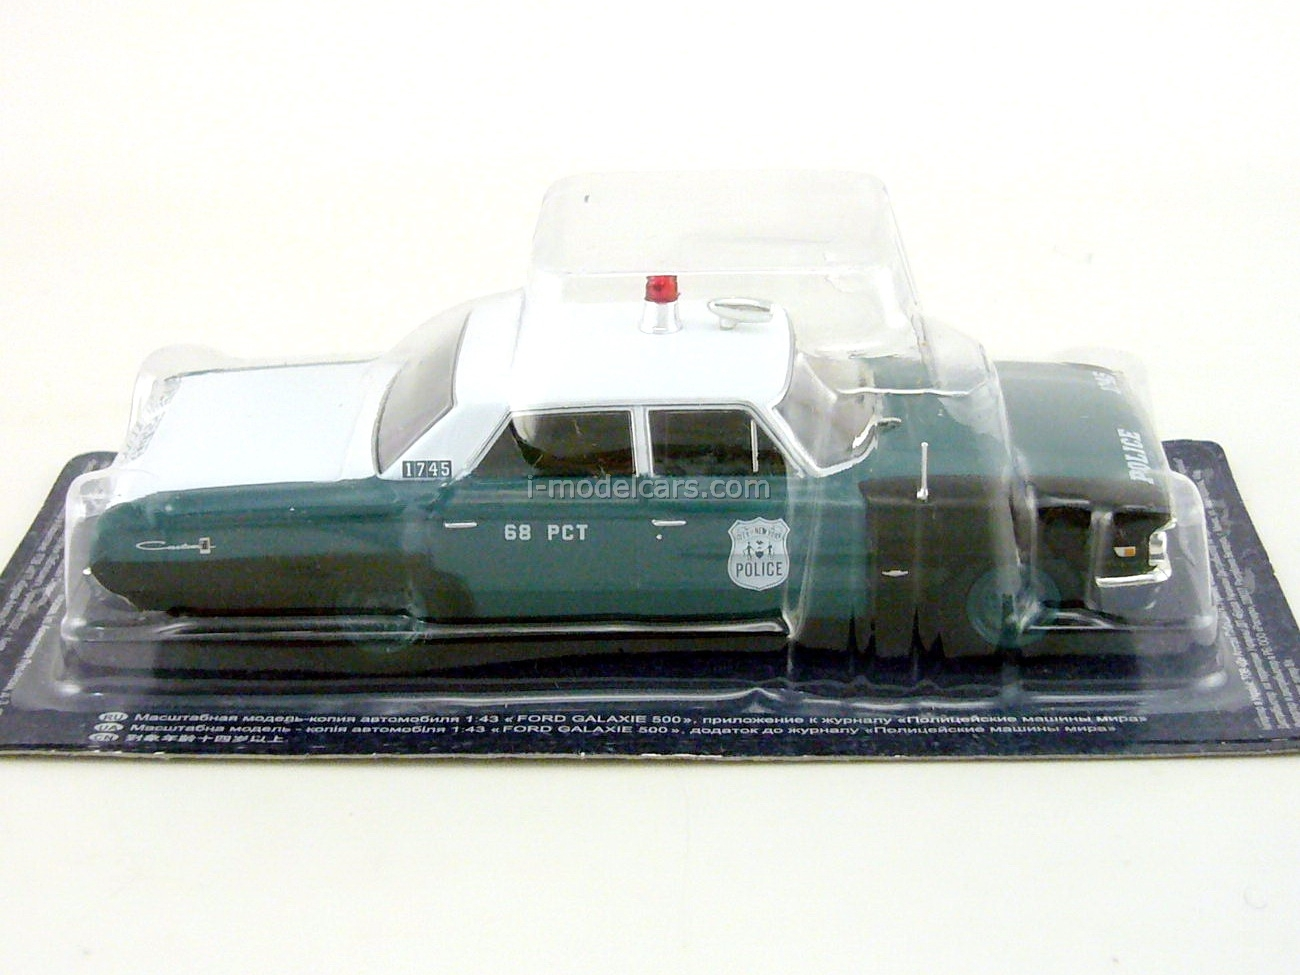 Ford Galaxie 500 1964 NYPD 1:43 DeAgostini World's Police Car #67